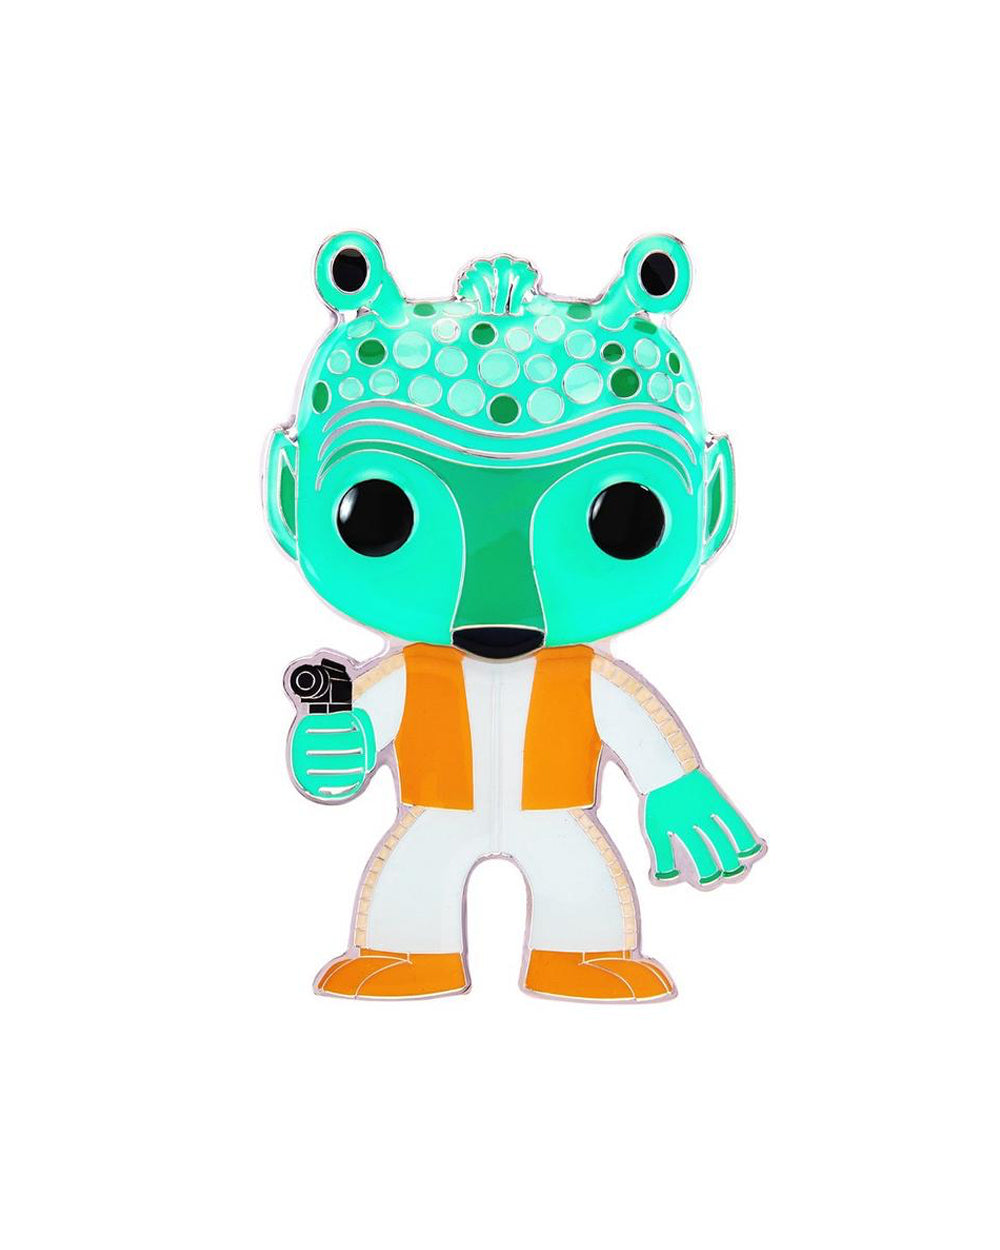 Pop PIN - Star Wars Greedo #04 - The Pink a la Mode - Funko - The Pink a la Mode